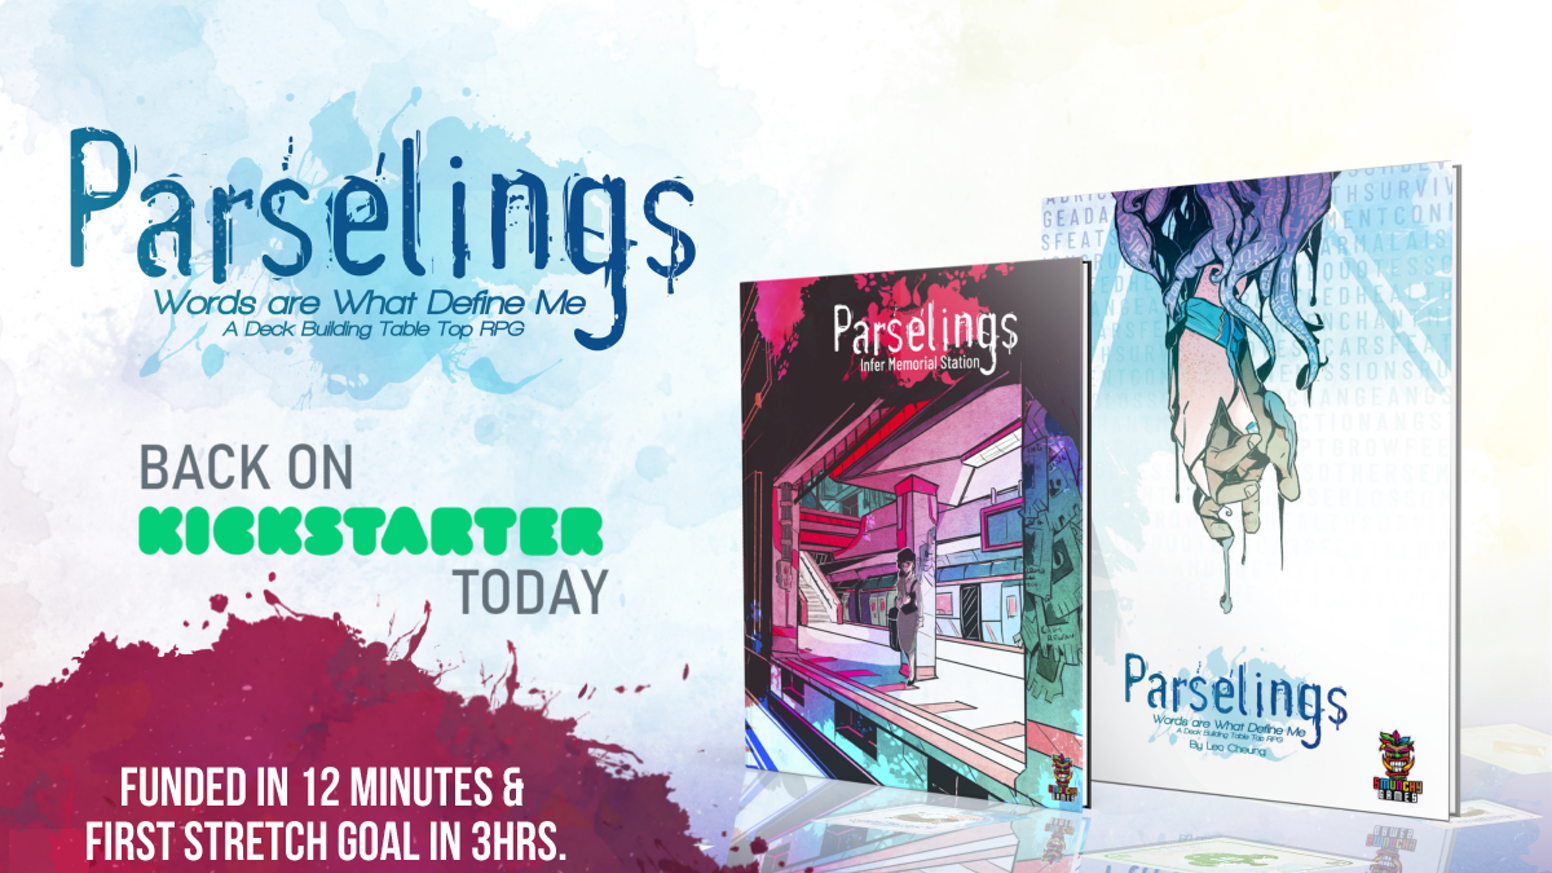 Parselings is a Deckbuilding Table Top Roleplaying game about identity and collaborative word magic.  In a world not too unlike our own, strange new tattoos have begun to emerge and mundane reality begins to melt away into a twisted reflection of itself.